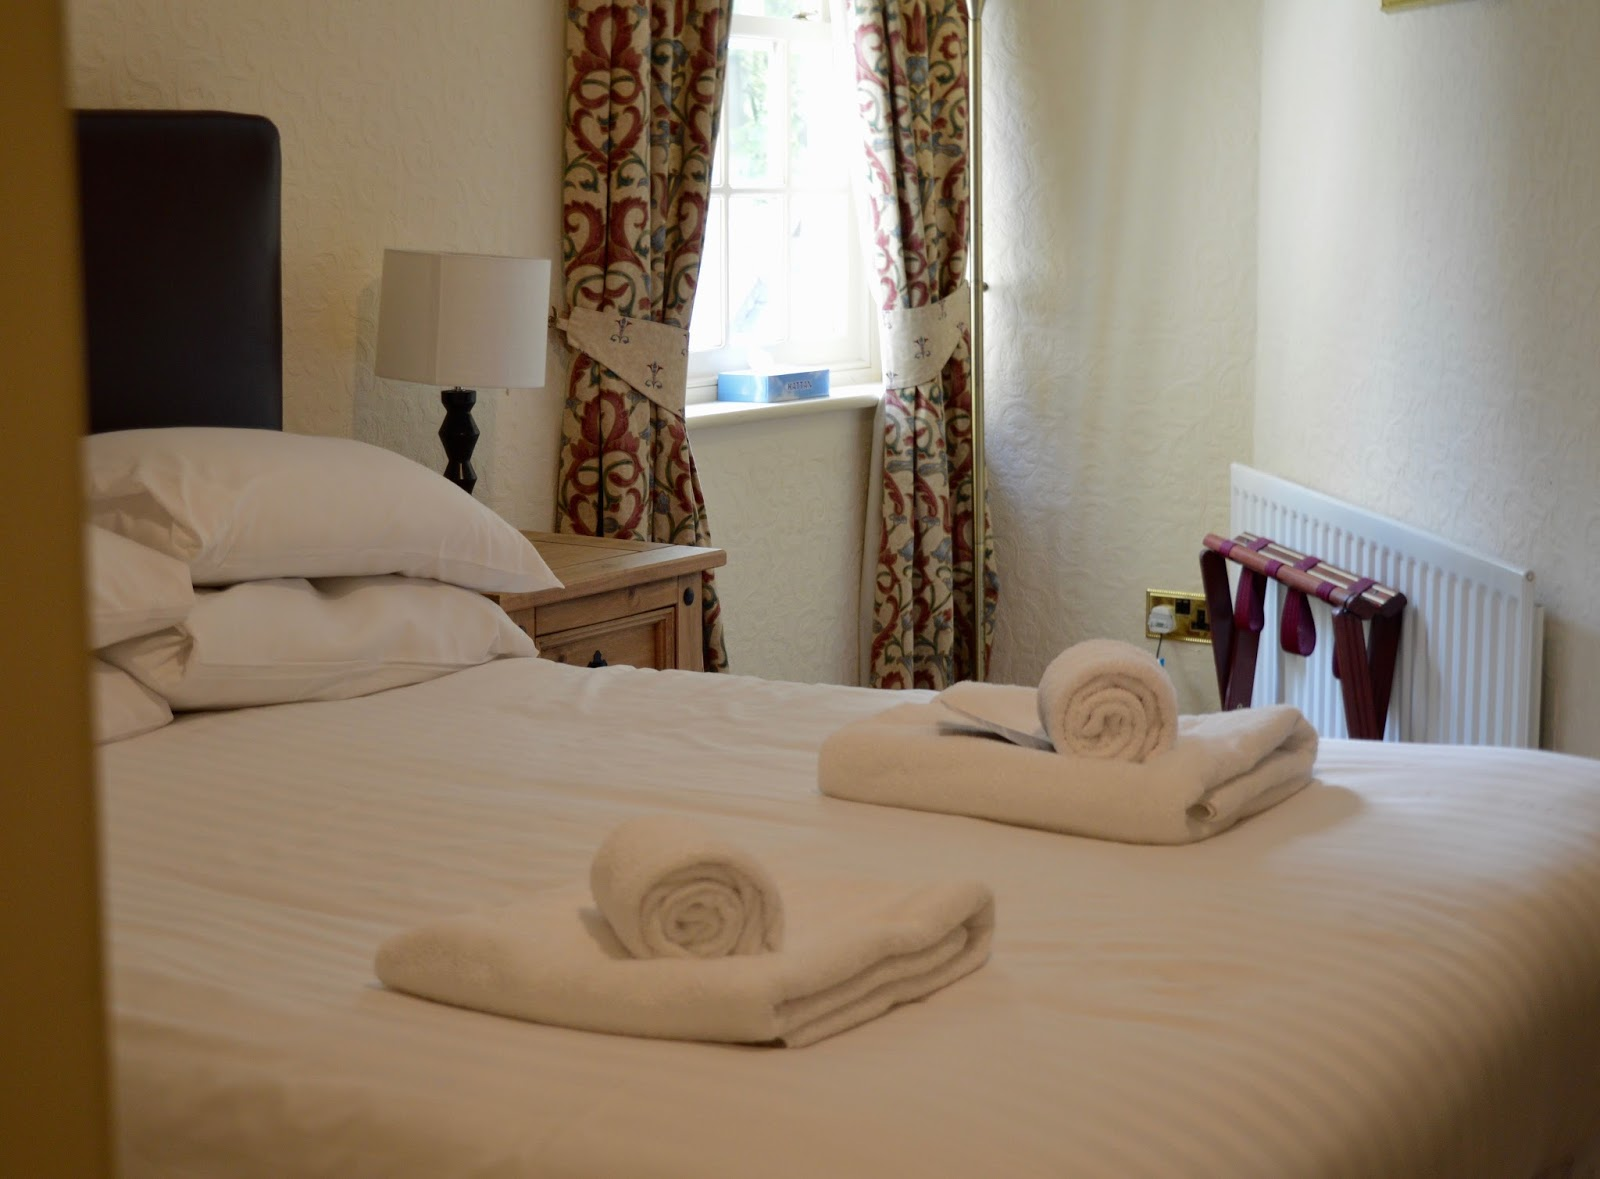 The Kingslodge Inn, Durham   A Review - A lovely budget hotel near the train station and city centre - double bedroom